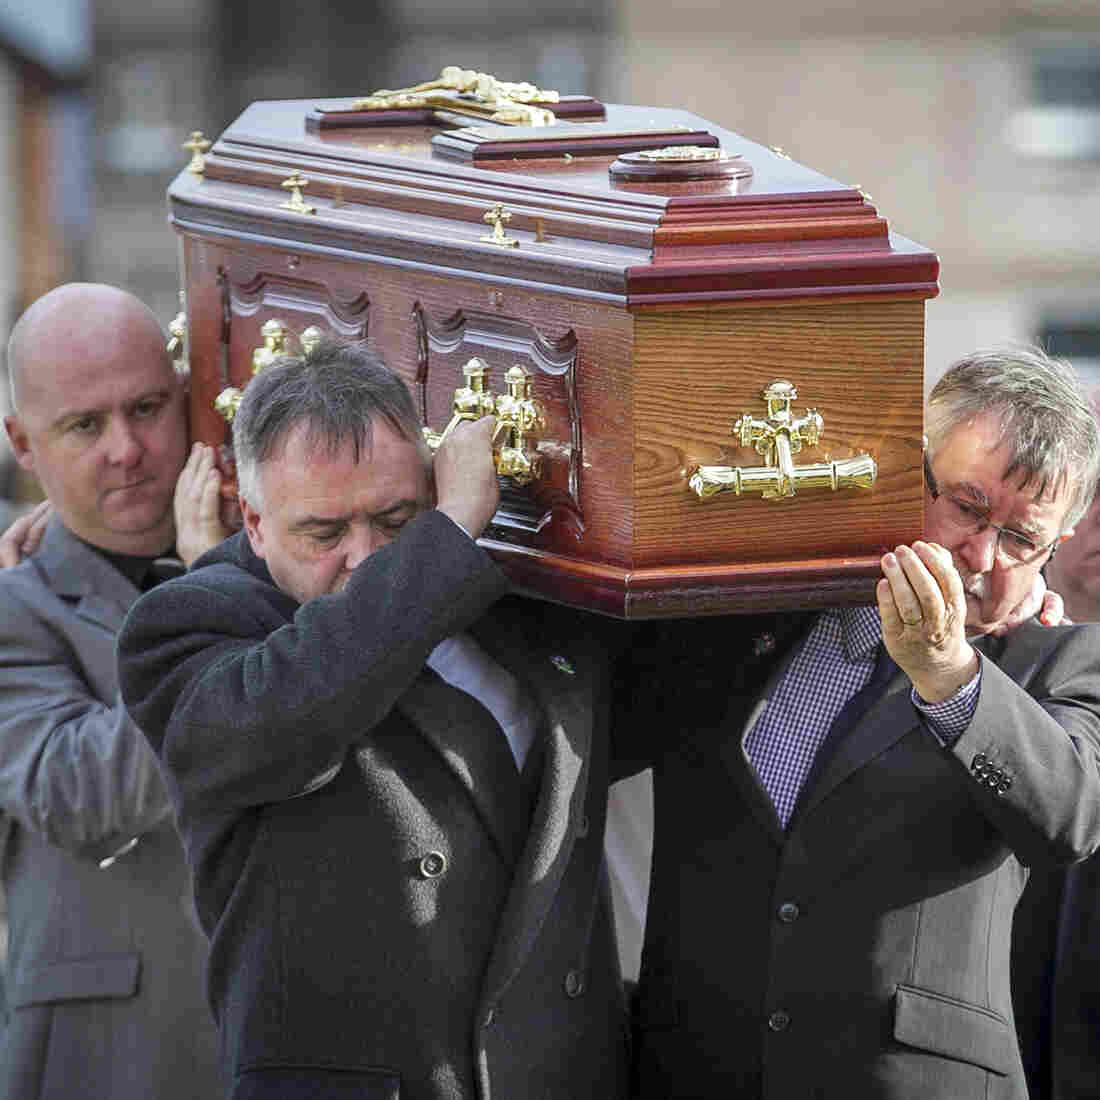 The remains of Brendan Megraw are carried to St. Oliver Plunkett Church in Belfast by his brothers Kieran (second left) and Sean (second right) on Nov. 14. The remains were found in a bog 36 years after Megrew was taken by the IRA. He was one of the many who died or disappeared during the decades-long Troubles between Protestant loyalists and Catholic republicans in Northern Ireland.